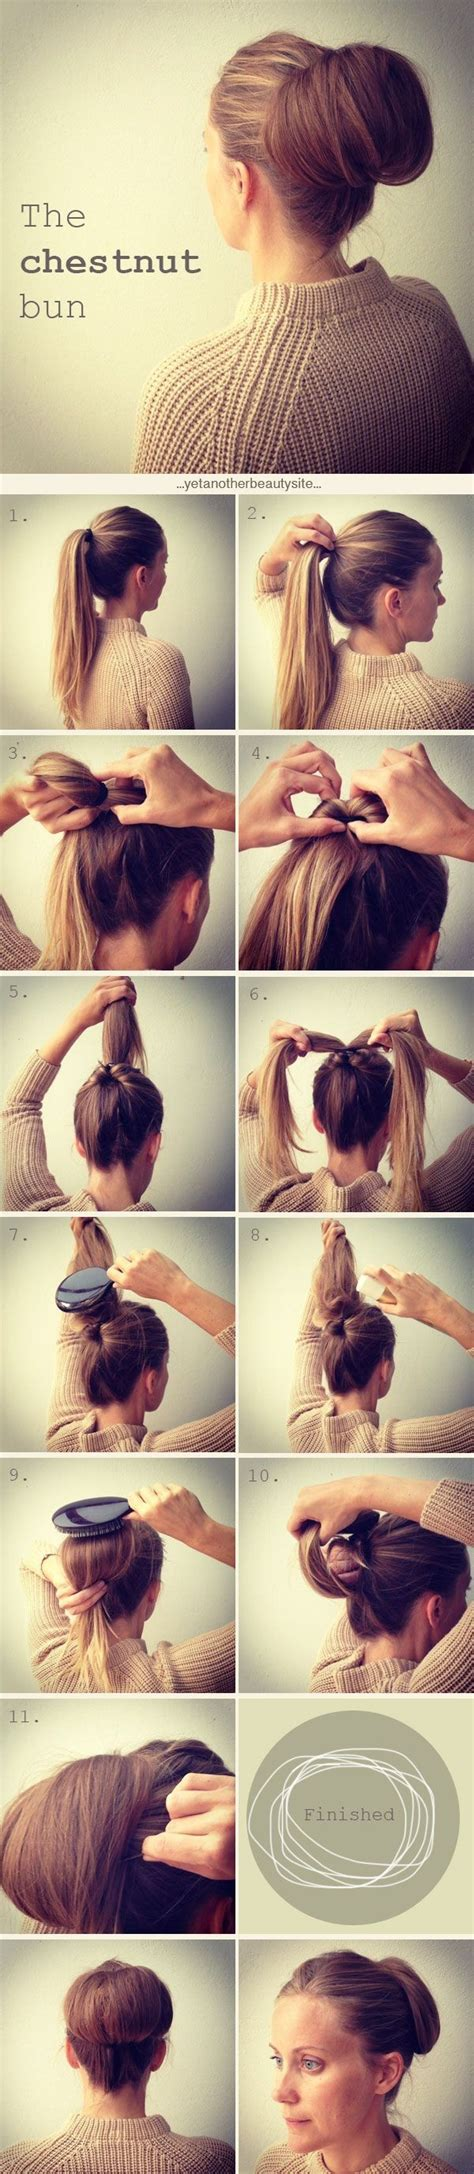 easy and simple hairstyles for office 18 simple office hairstyles for women you have to see